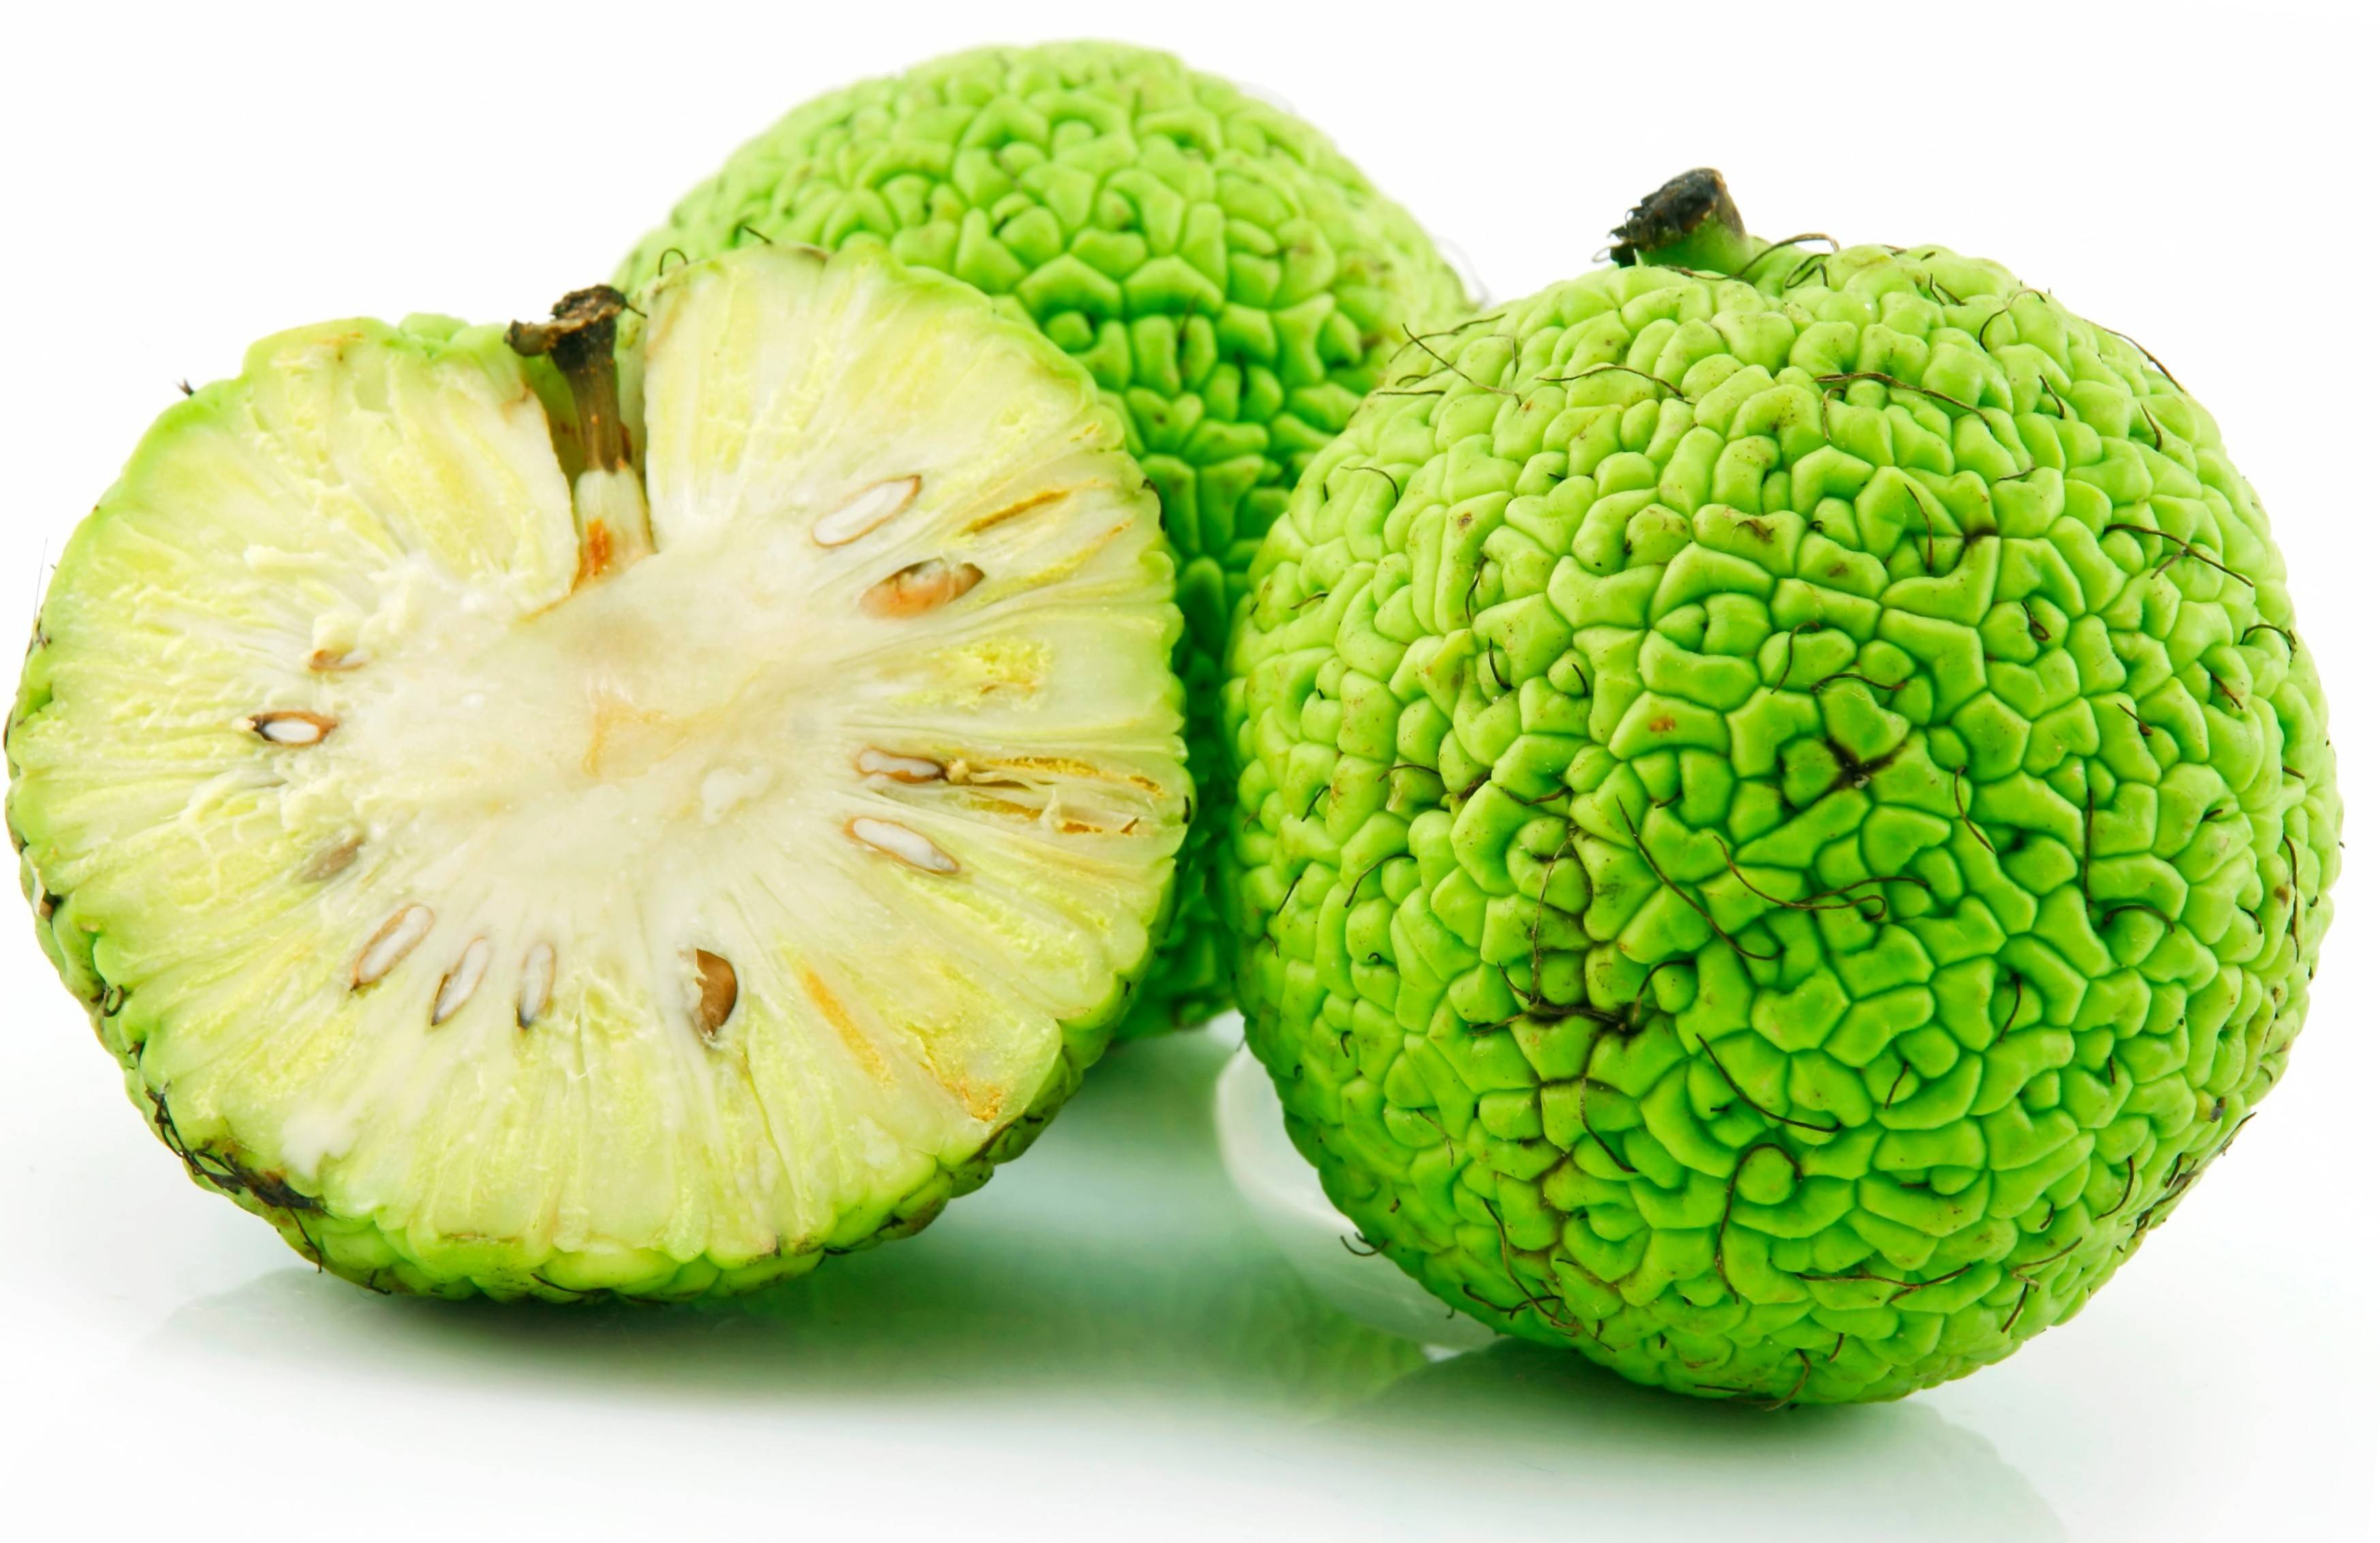 Sliced Osage Oranges (Maclura) Isolated on White Background